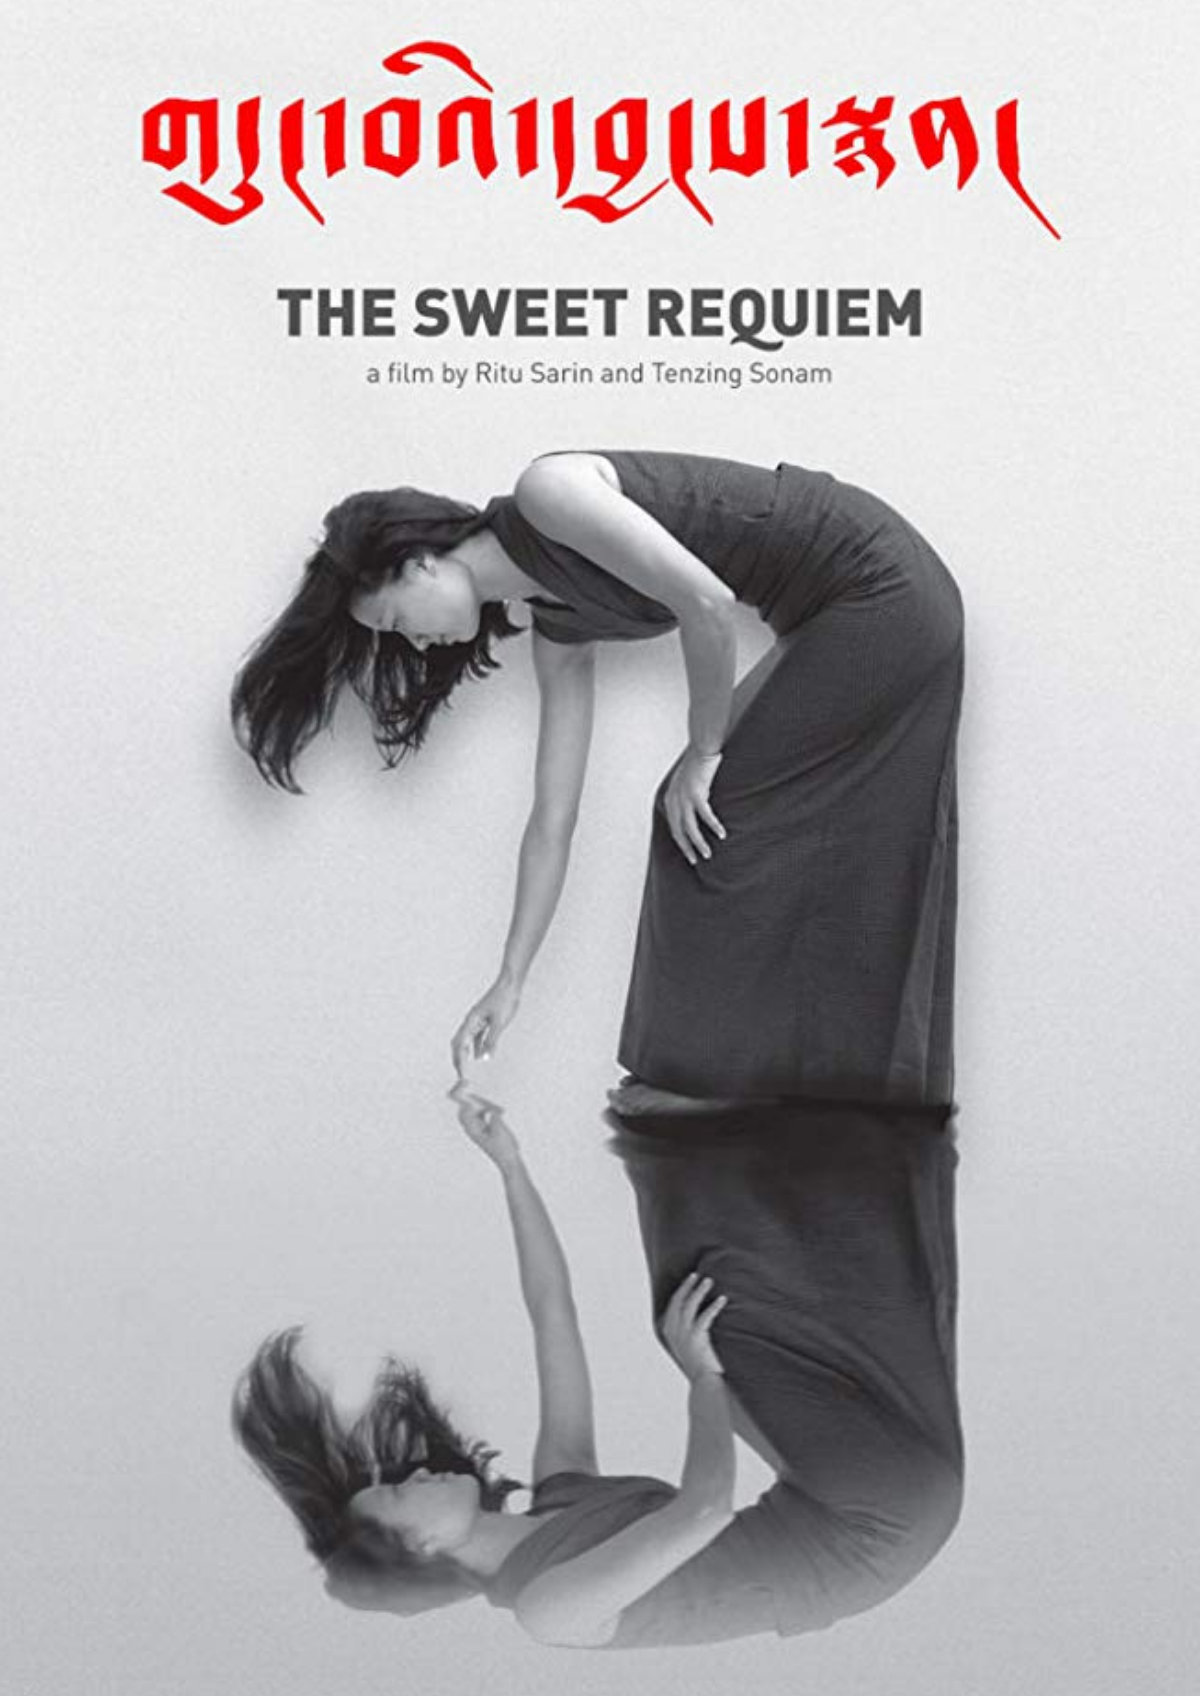 'The Sweet Requiem (Kyoyang Ngarmo)' movie poster